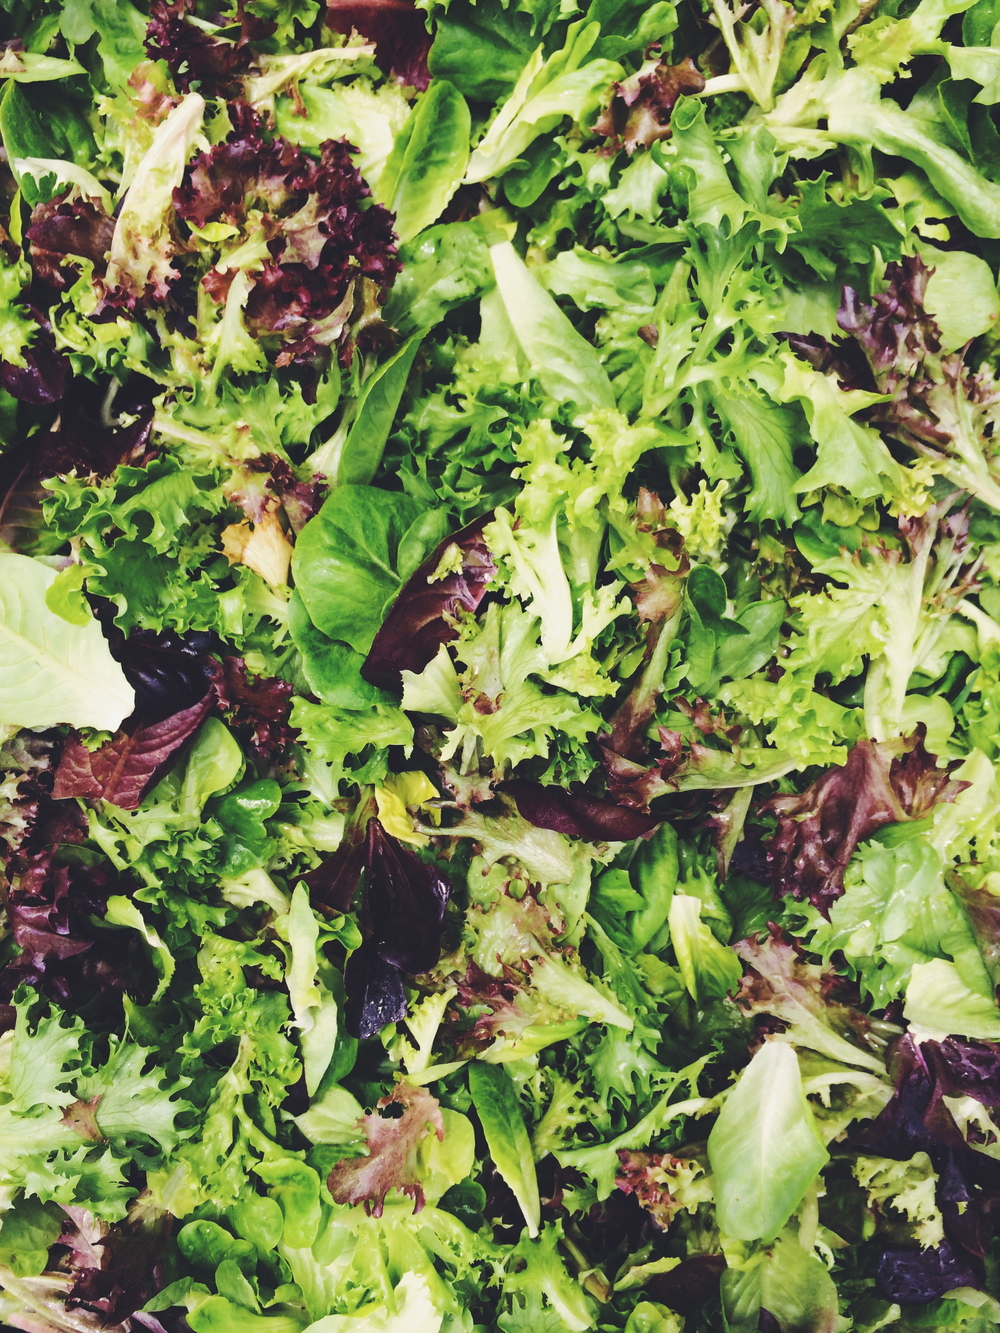 Colorful and tender baby lettuces make the most delicious salads, especially when mixed with our custom spicy mix.